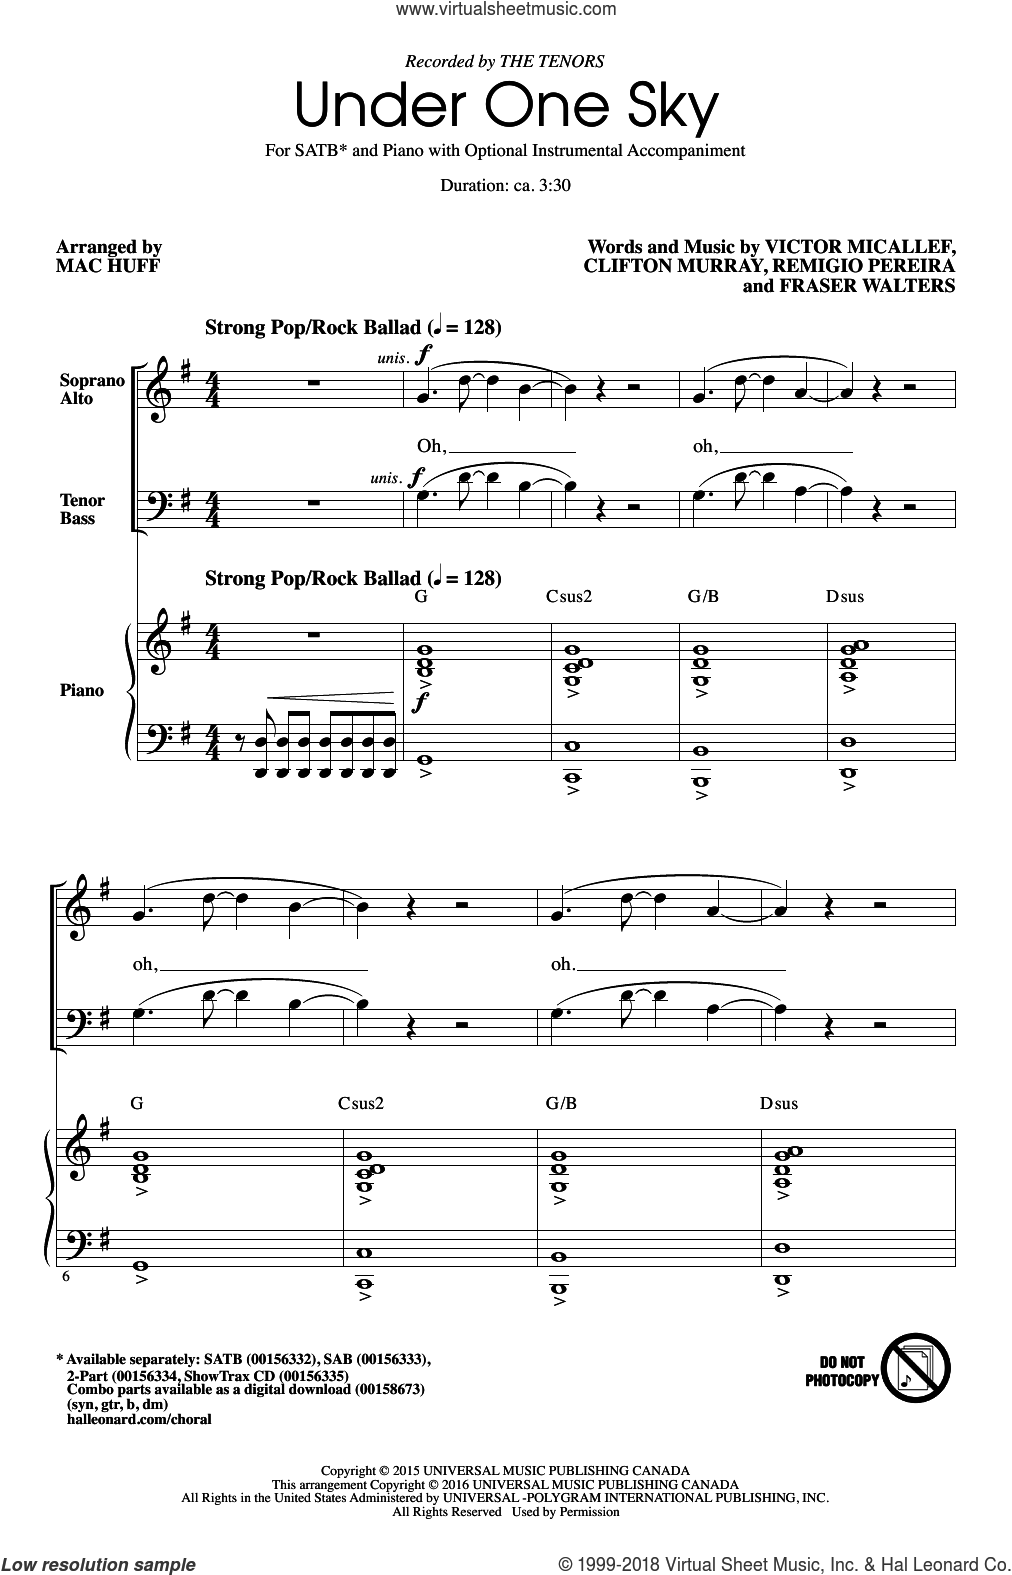 Under One Sky sheet music for choir (SATB: soprano, alto, tenor, bass) by Mac Huff, Clifton Murray, Fraser Walters, Remigio Pereira, The Tenors and Victor Micallef, intermediate skill level